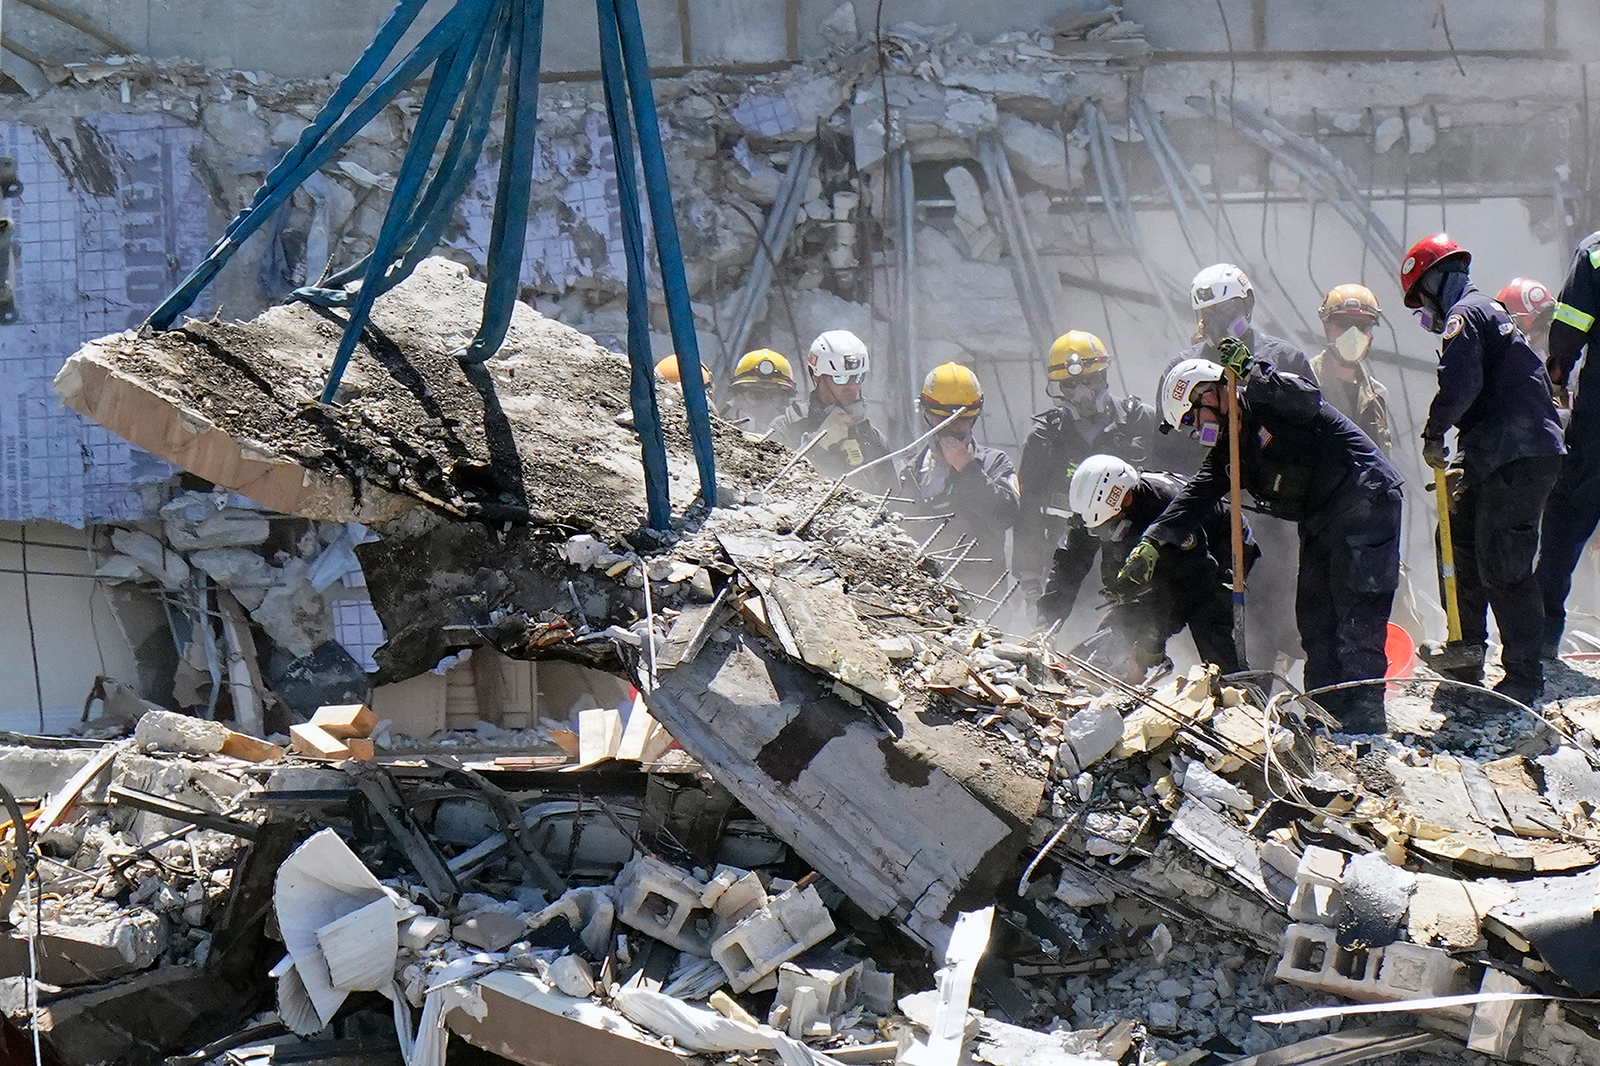 Crews work in the rubble at the Champlain Towers South Condo, Sunday, June 27, in Surfside, Florida.